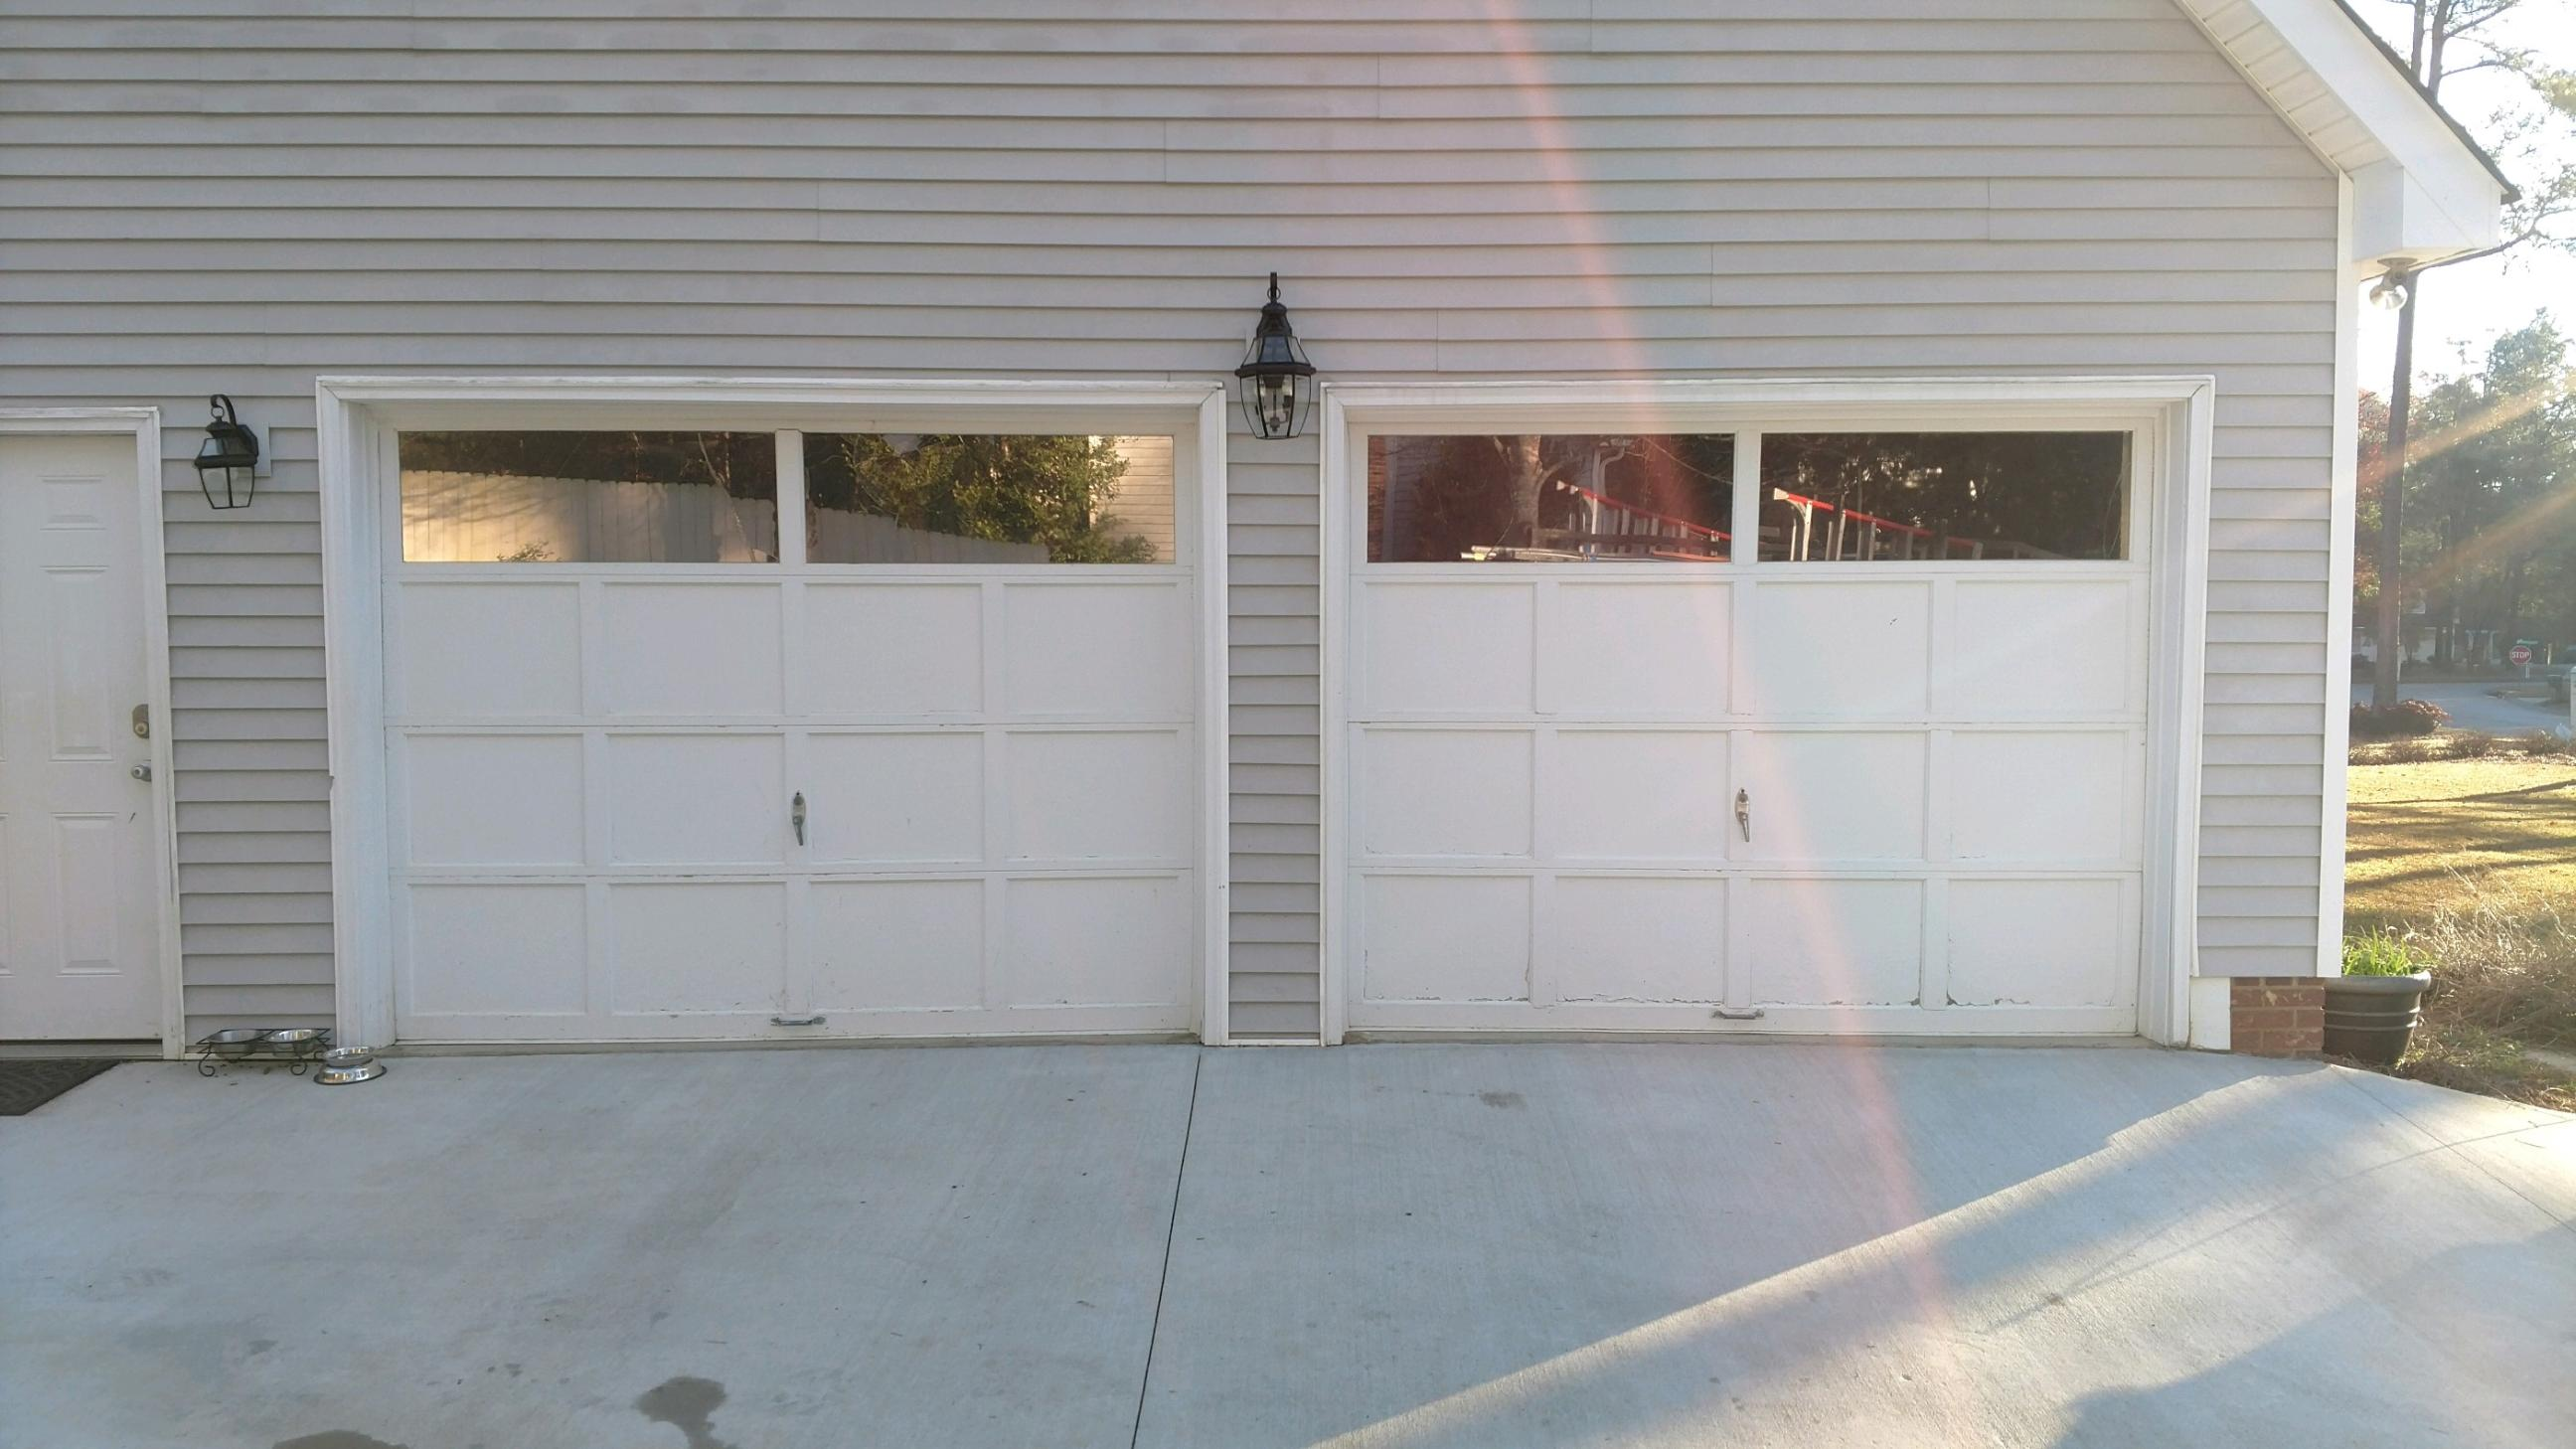 Garage door repair augusta ga ppi blog for Garage door repair lincolnton nc